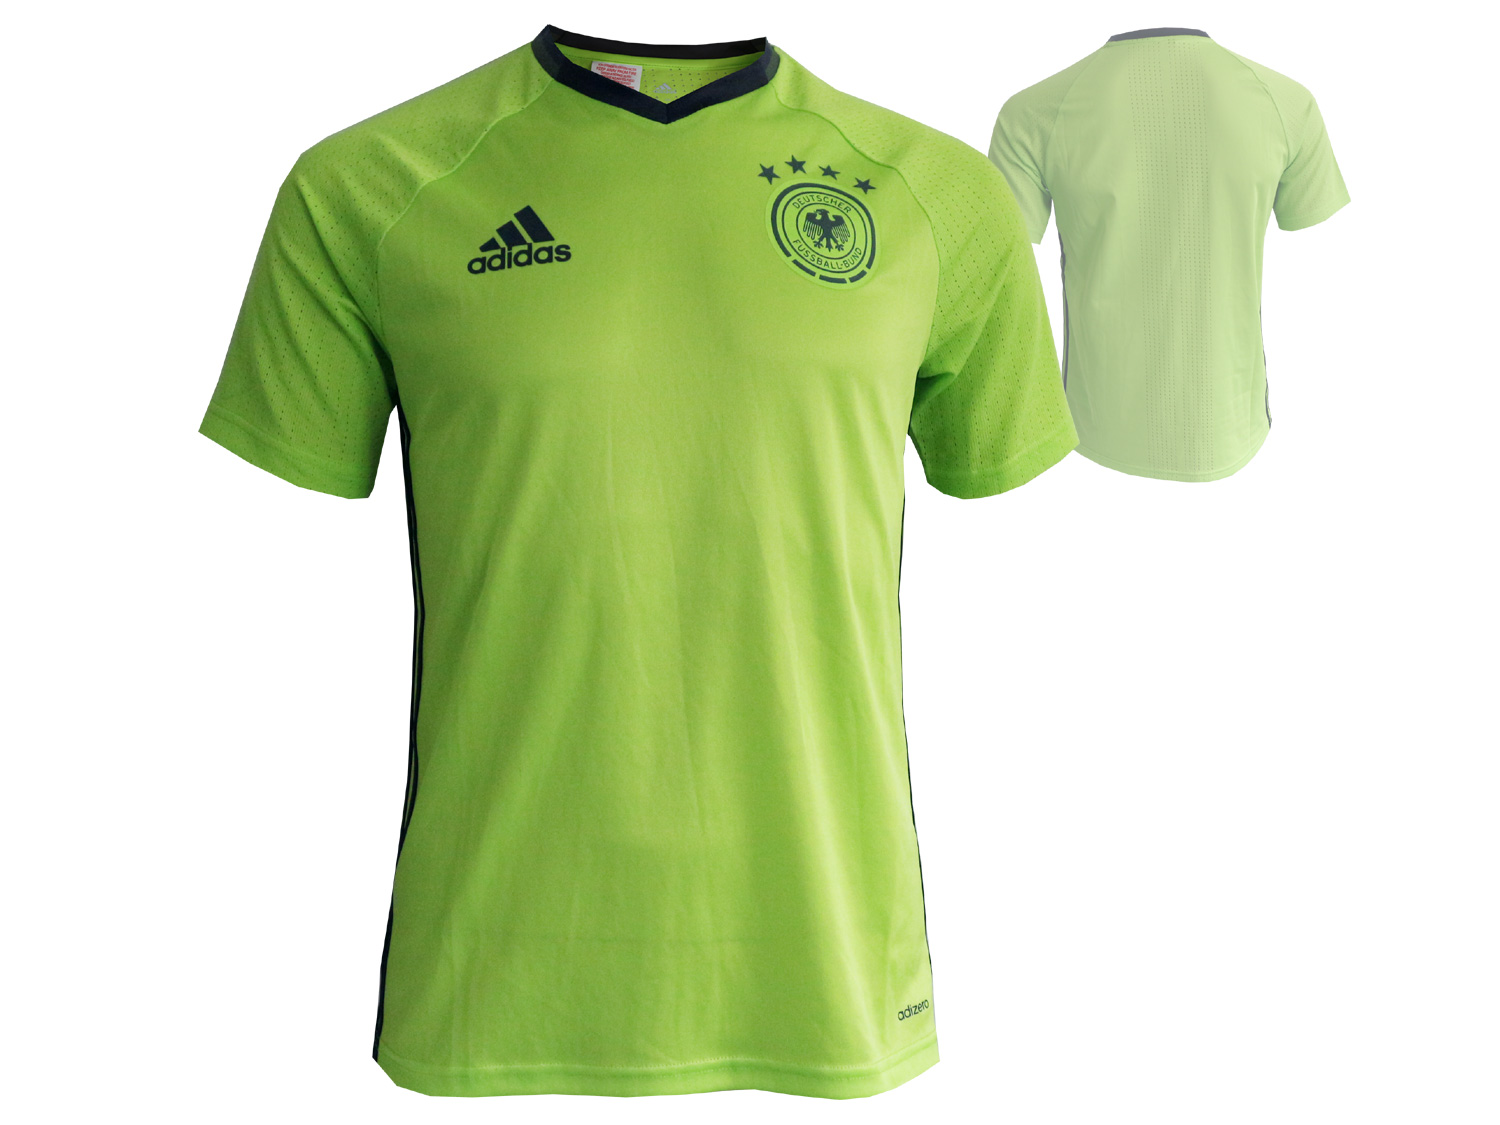 adidas Deutschland DFB Kinder Training Jersey